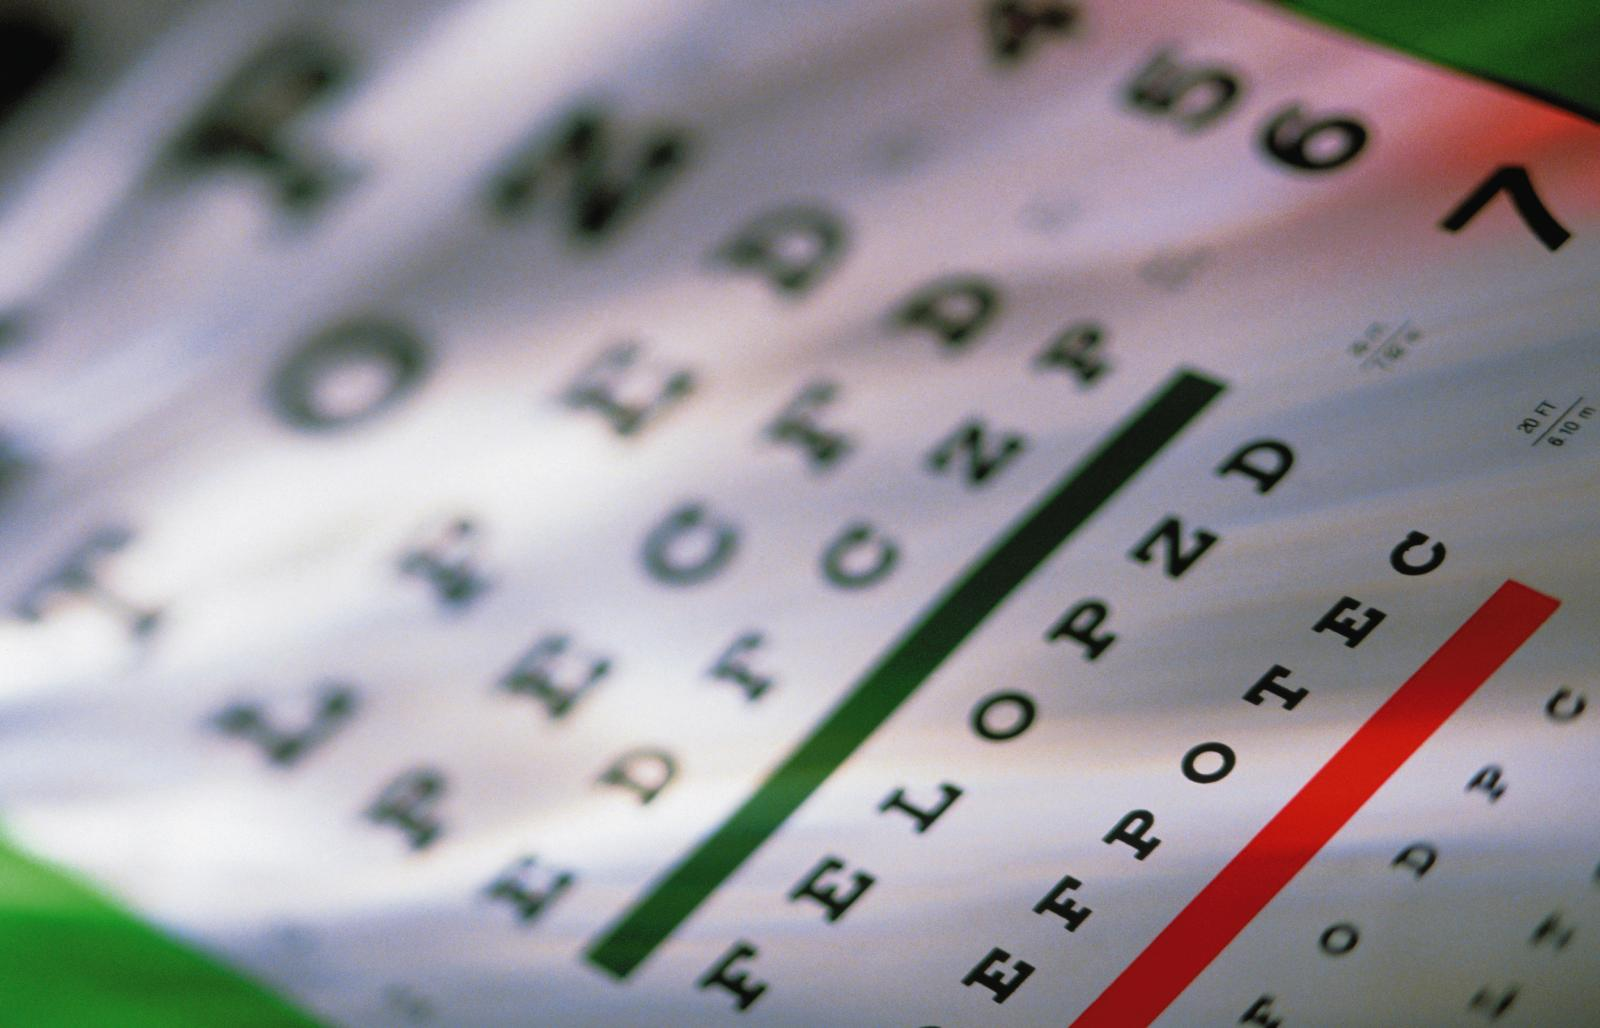 Study Finds Aflibercept Noninferior to Ranibizumab in Macular Edema, Results With Bevacizumab Inconclusive